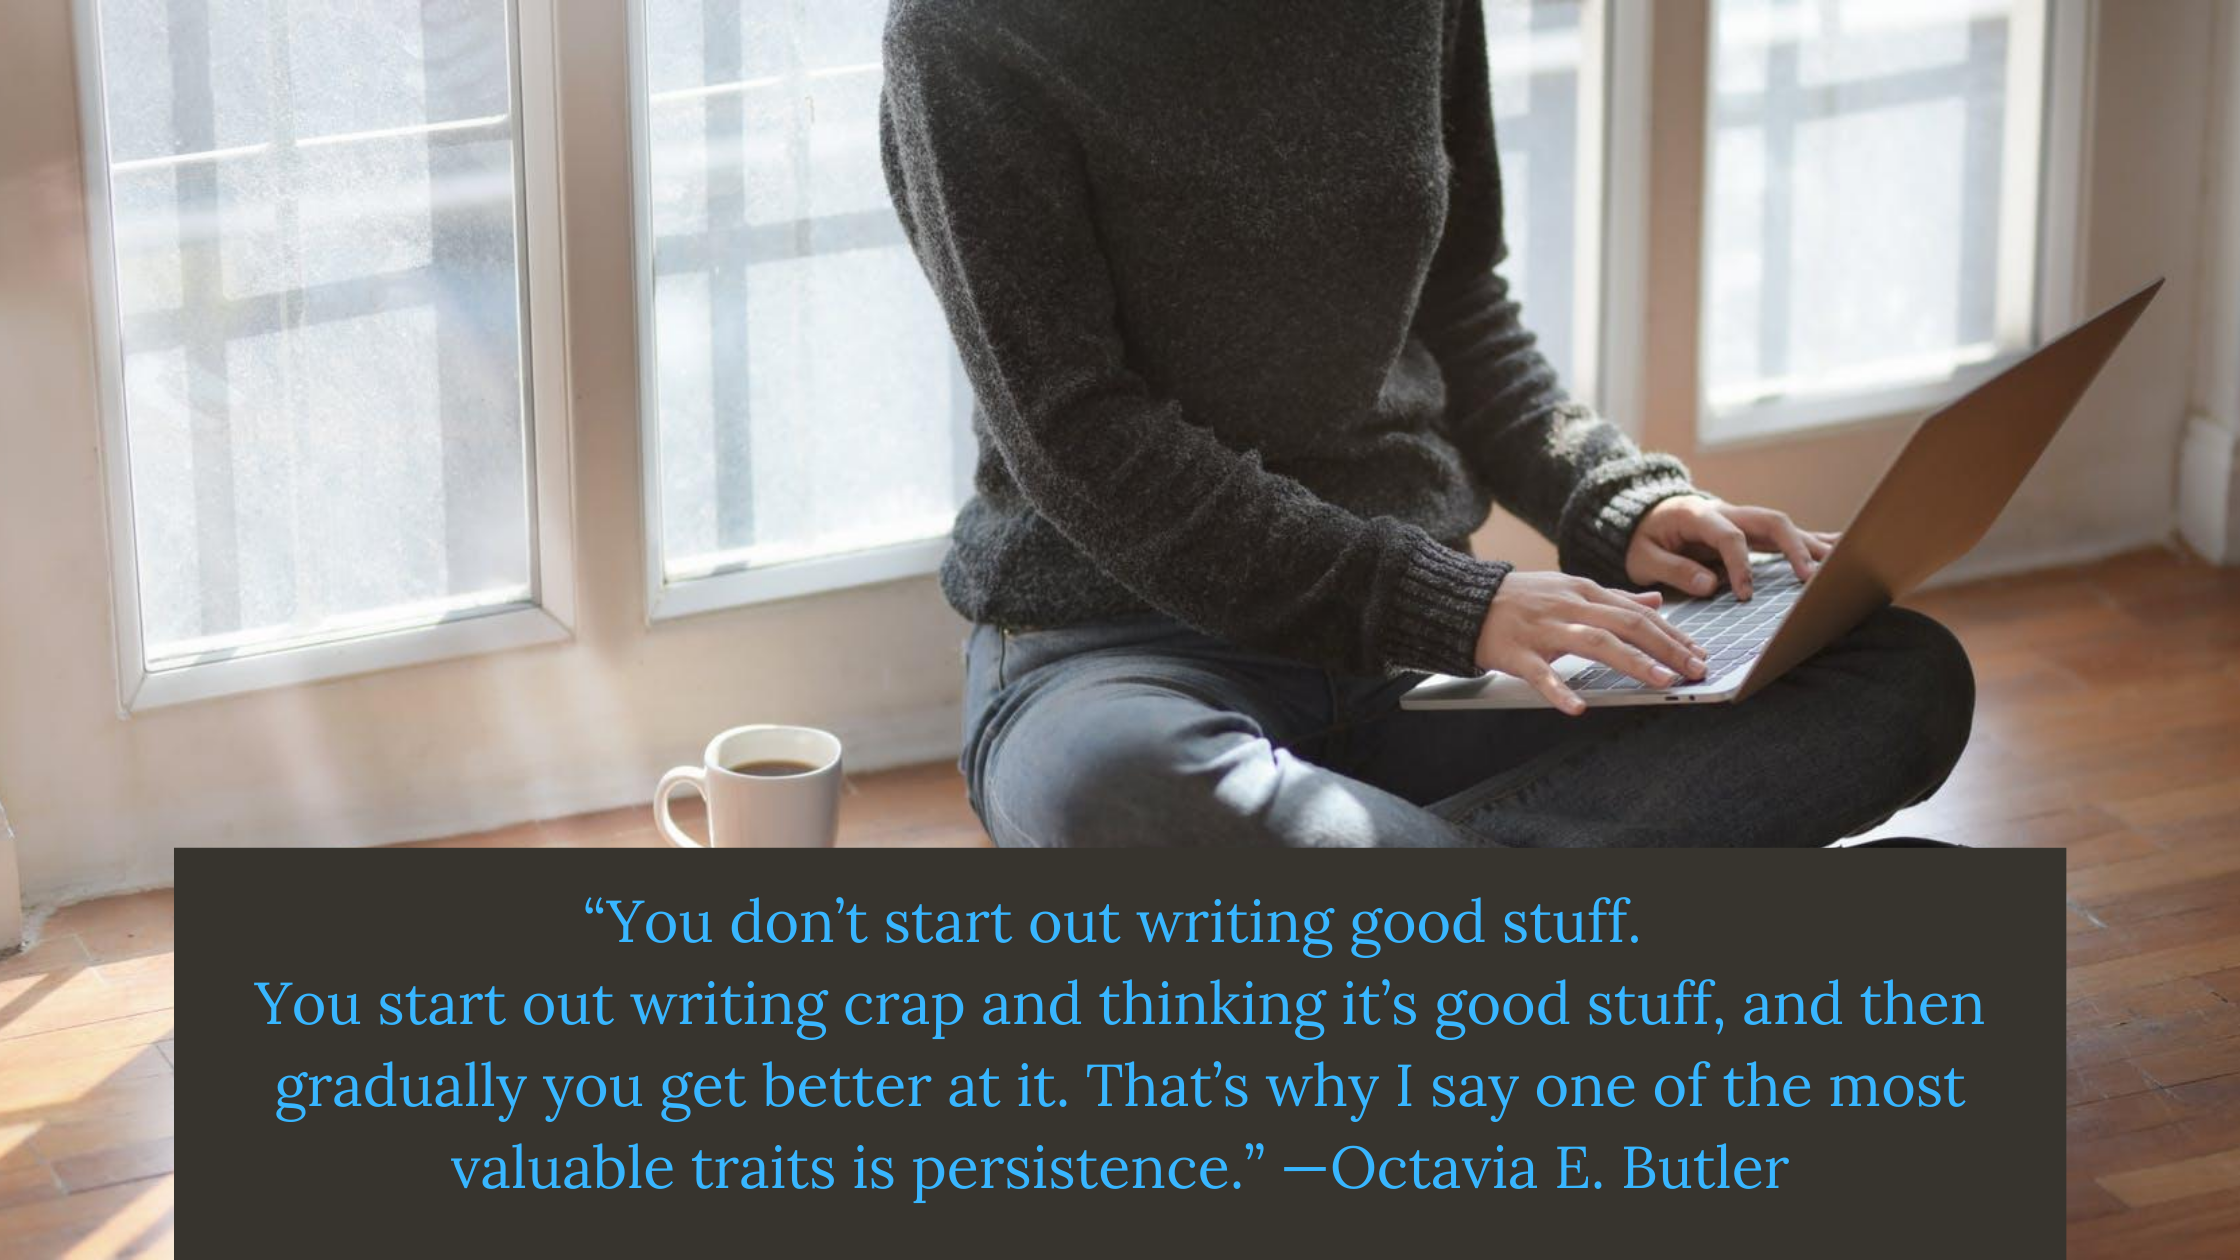 6 motivational writing quotes that are fitting to how i feel at teh moment